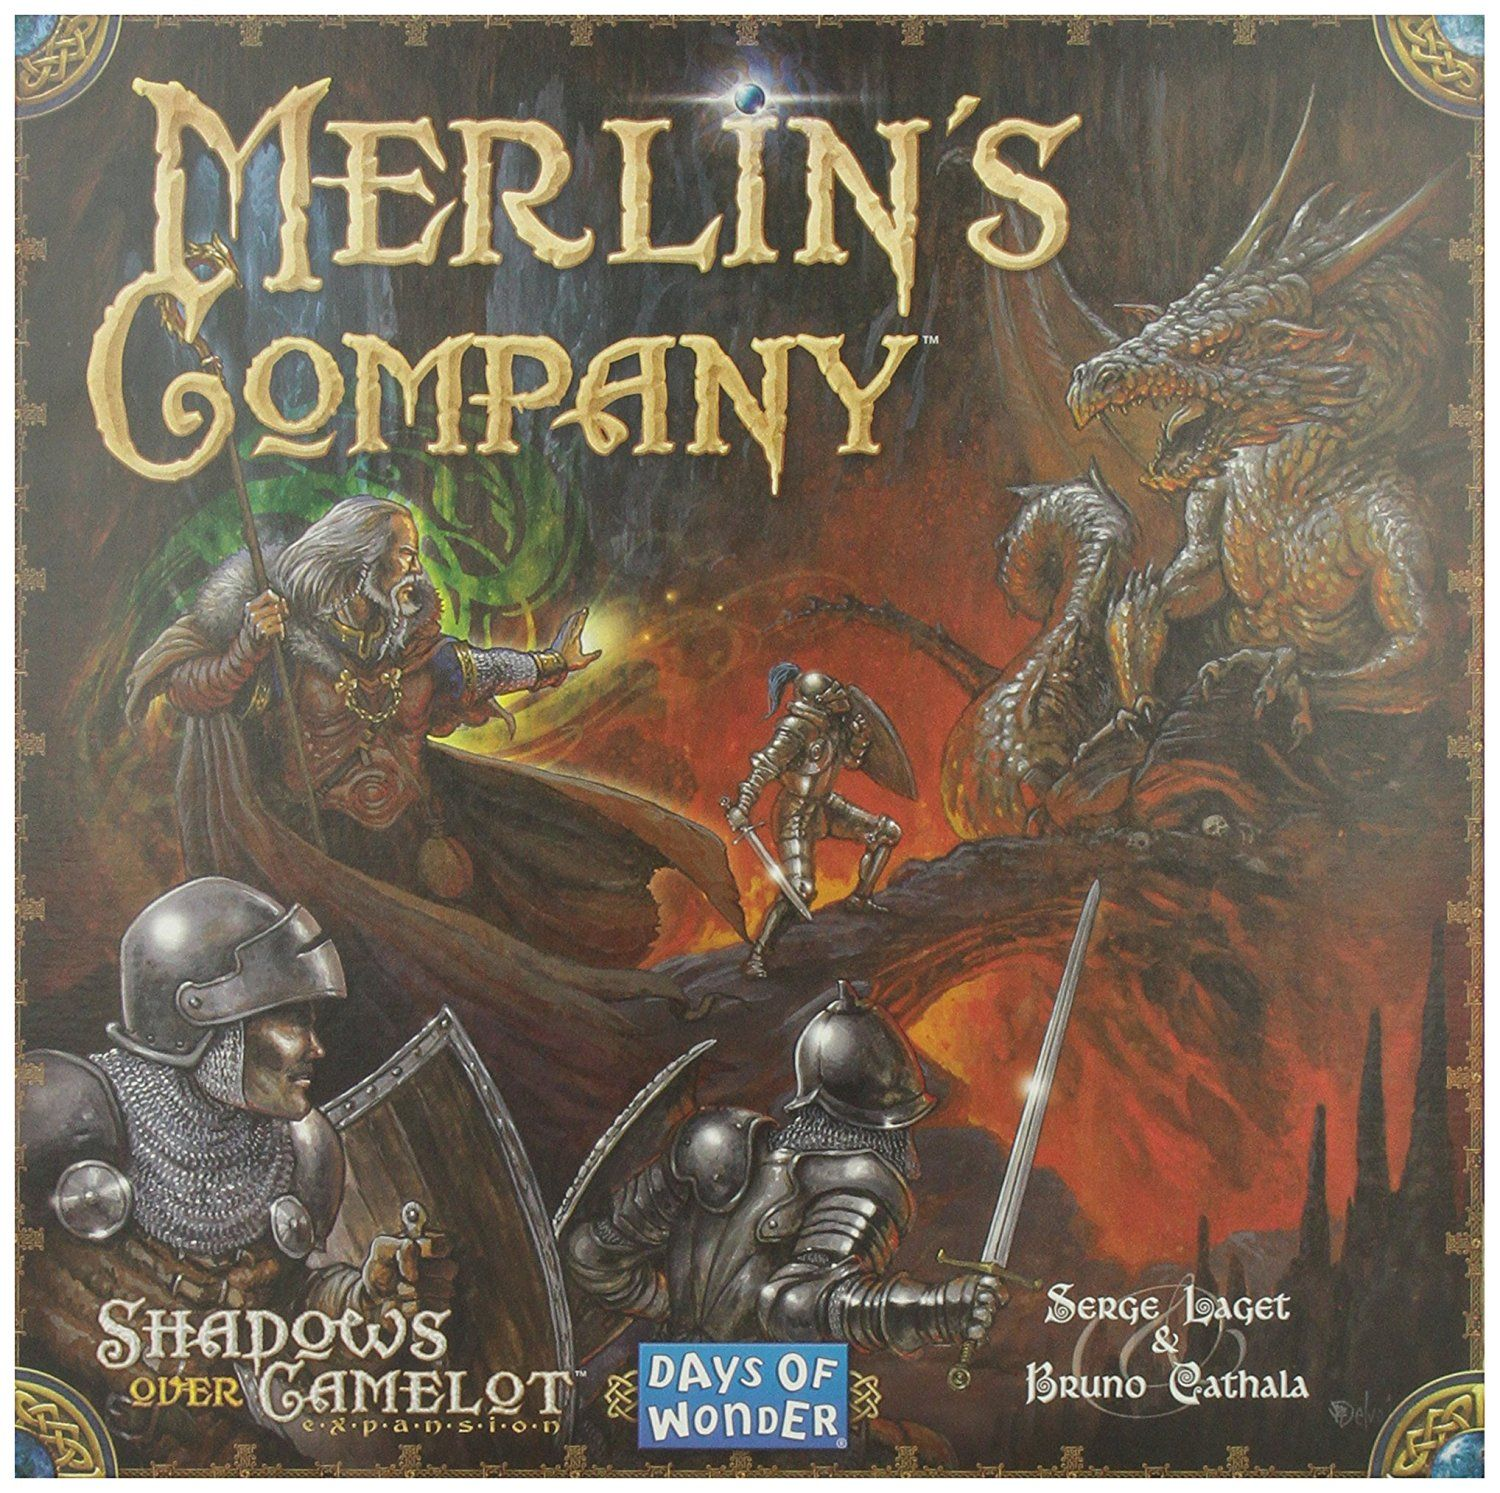 Days of Wonder Shadows over Camelot Merlin's Company English Board Game: Amazon.de: Spielzeug